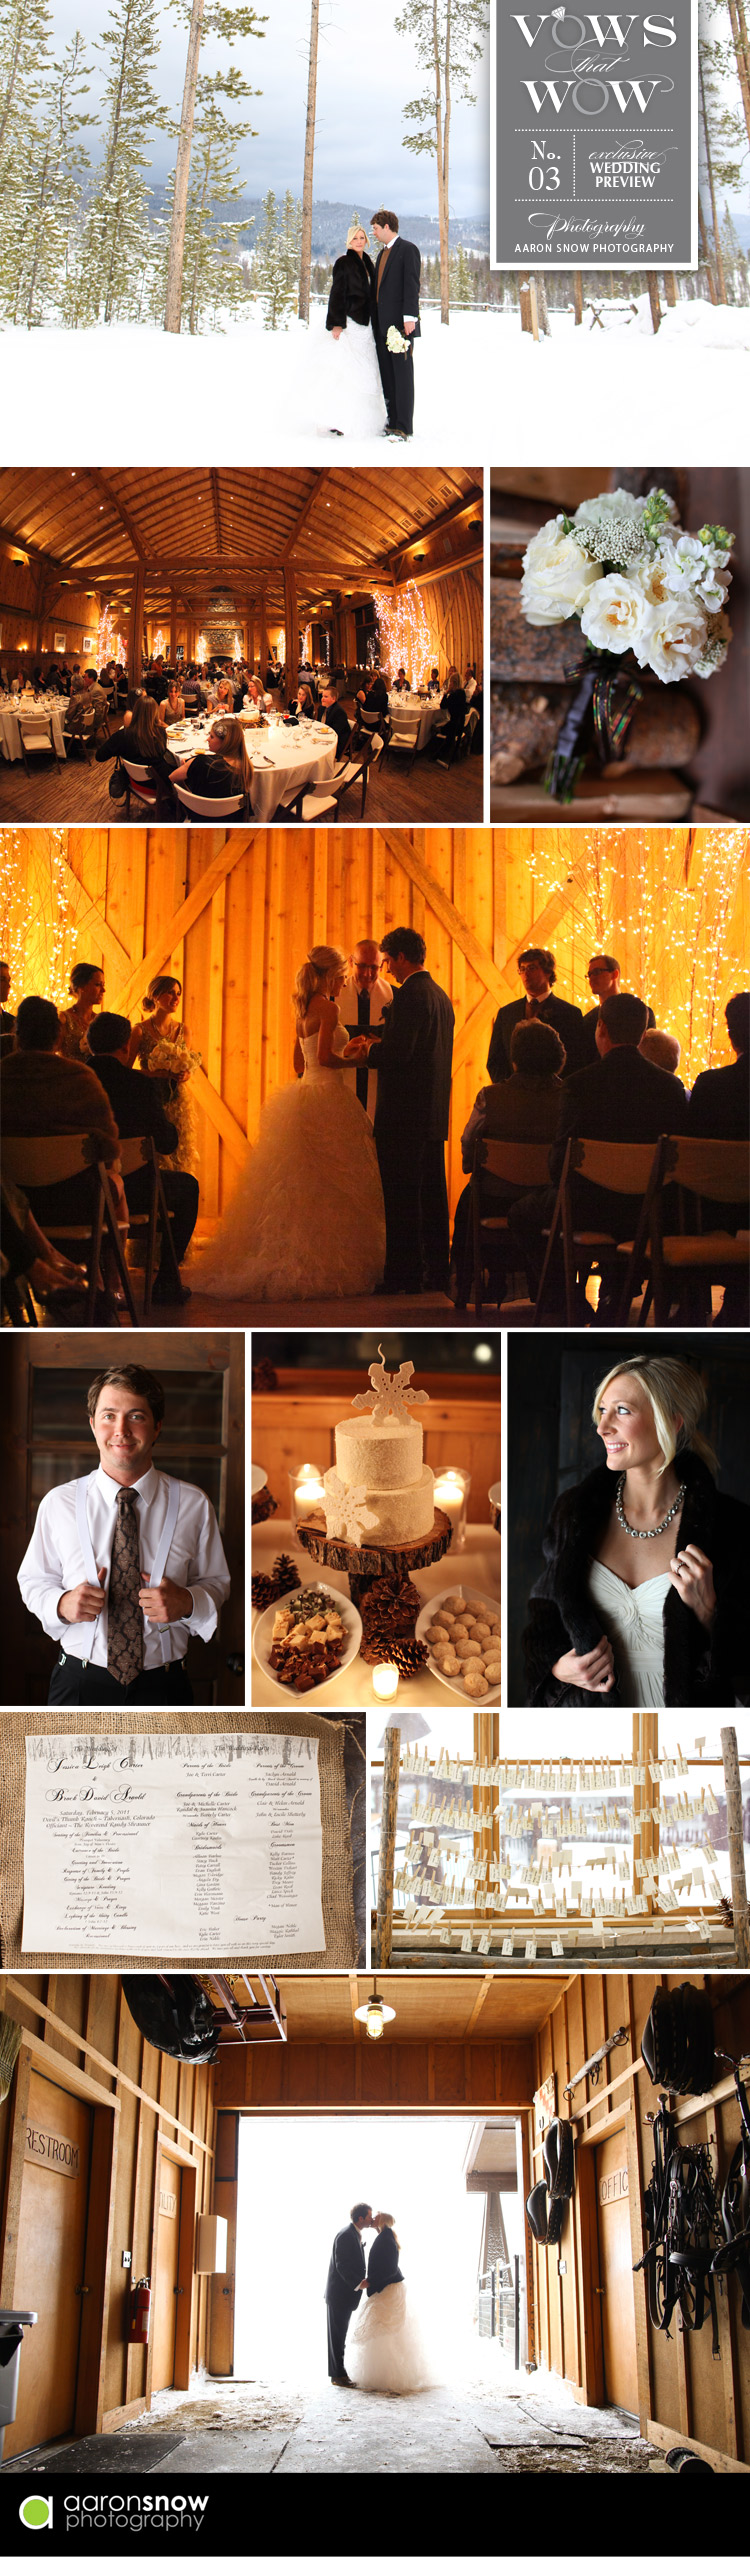 vows that wow–no 3–aaron snow photography